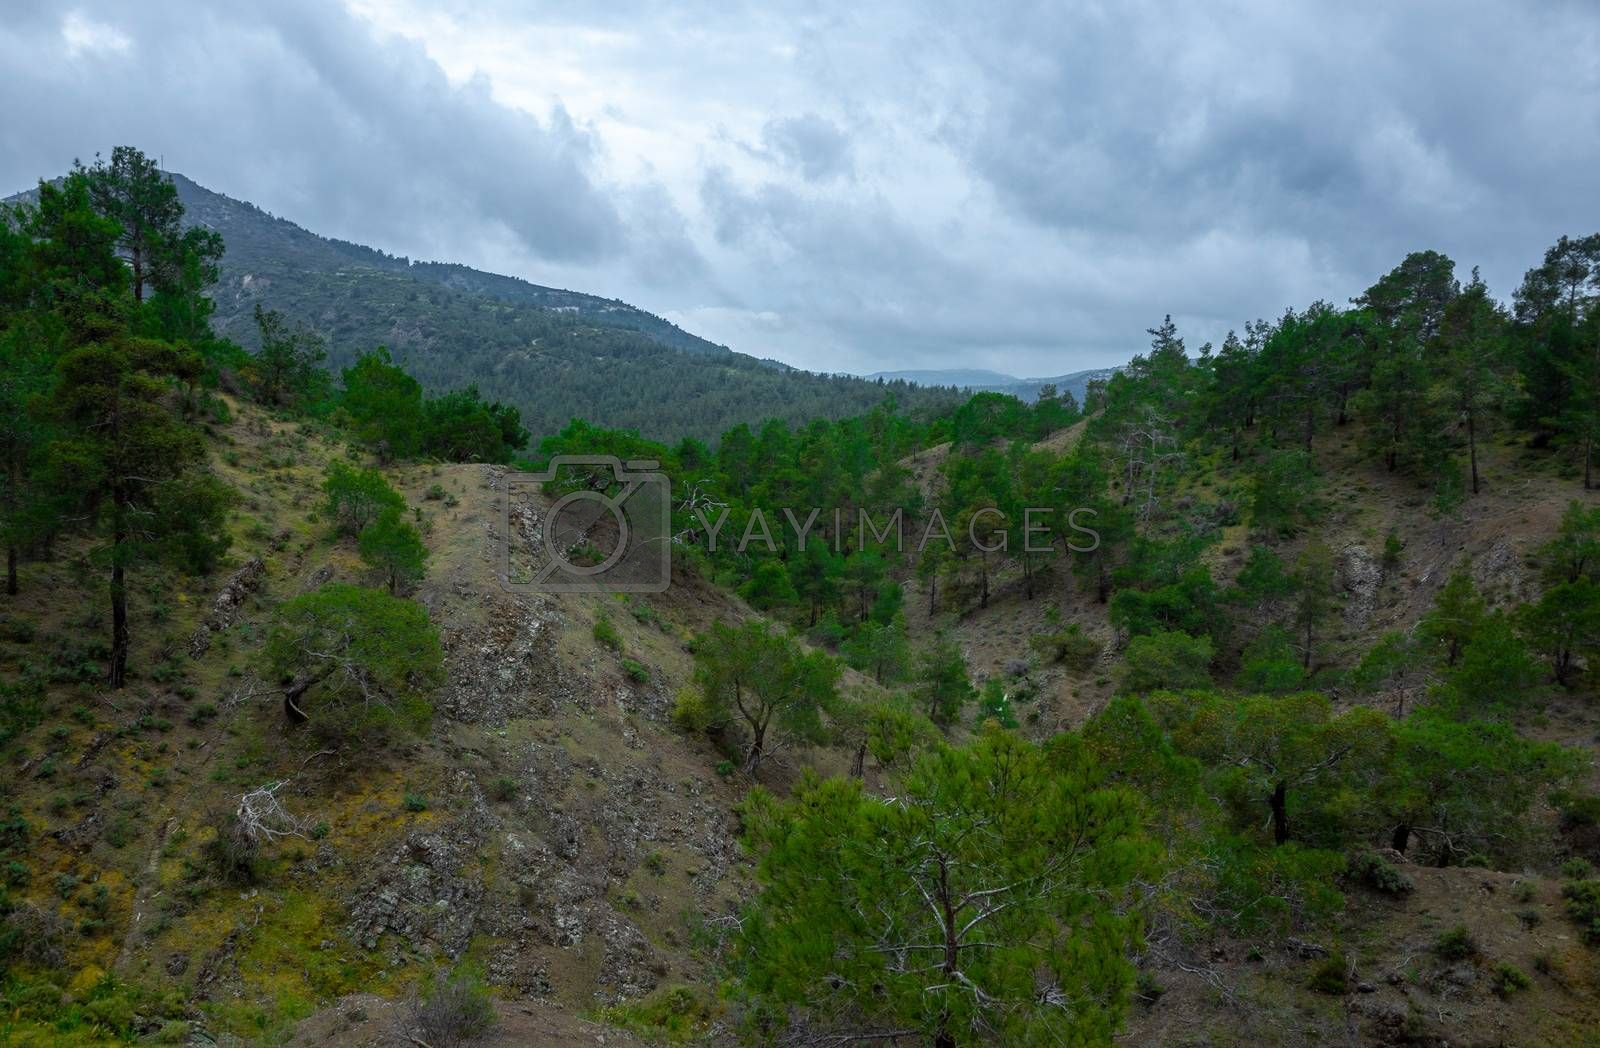 Forest-covered green hills on a bright Sunny summer day in the mountains of Central Cyprus.